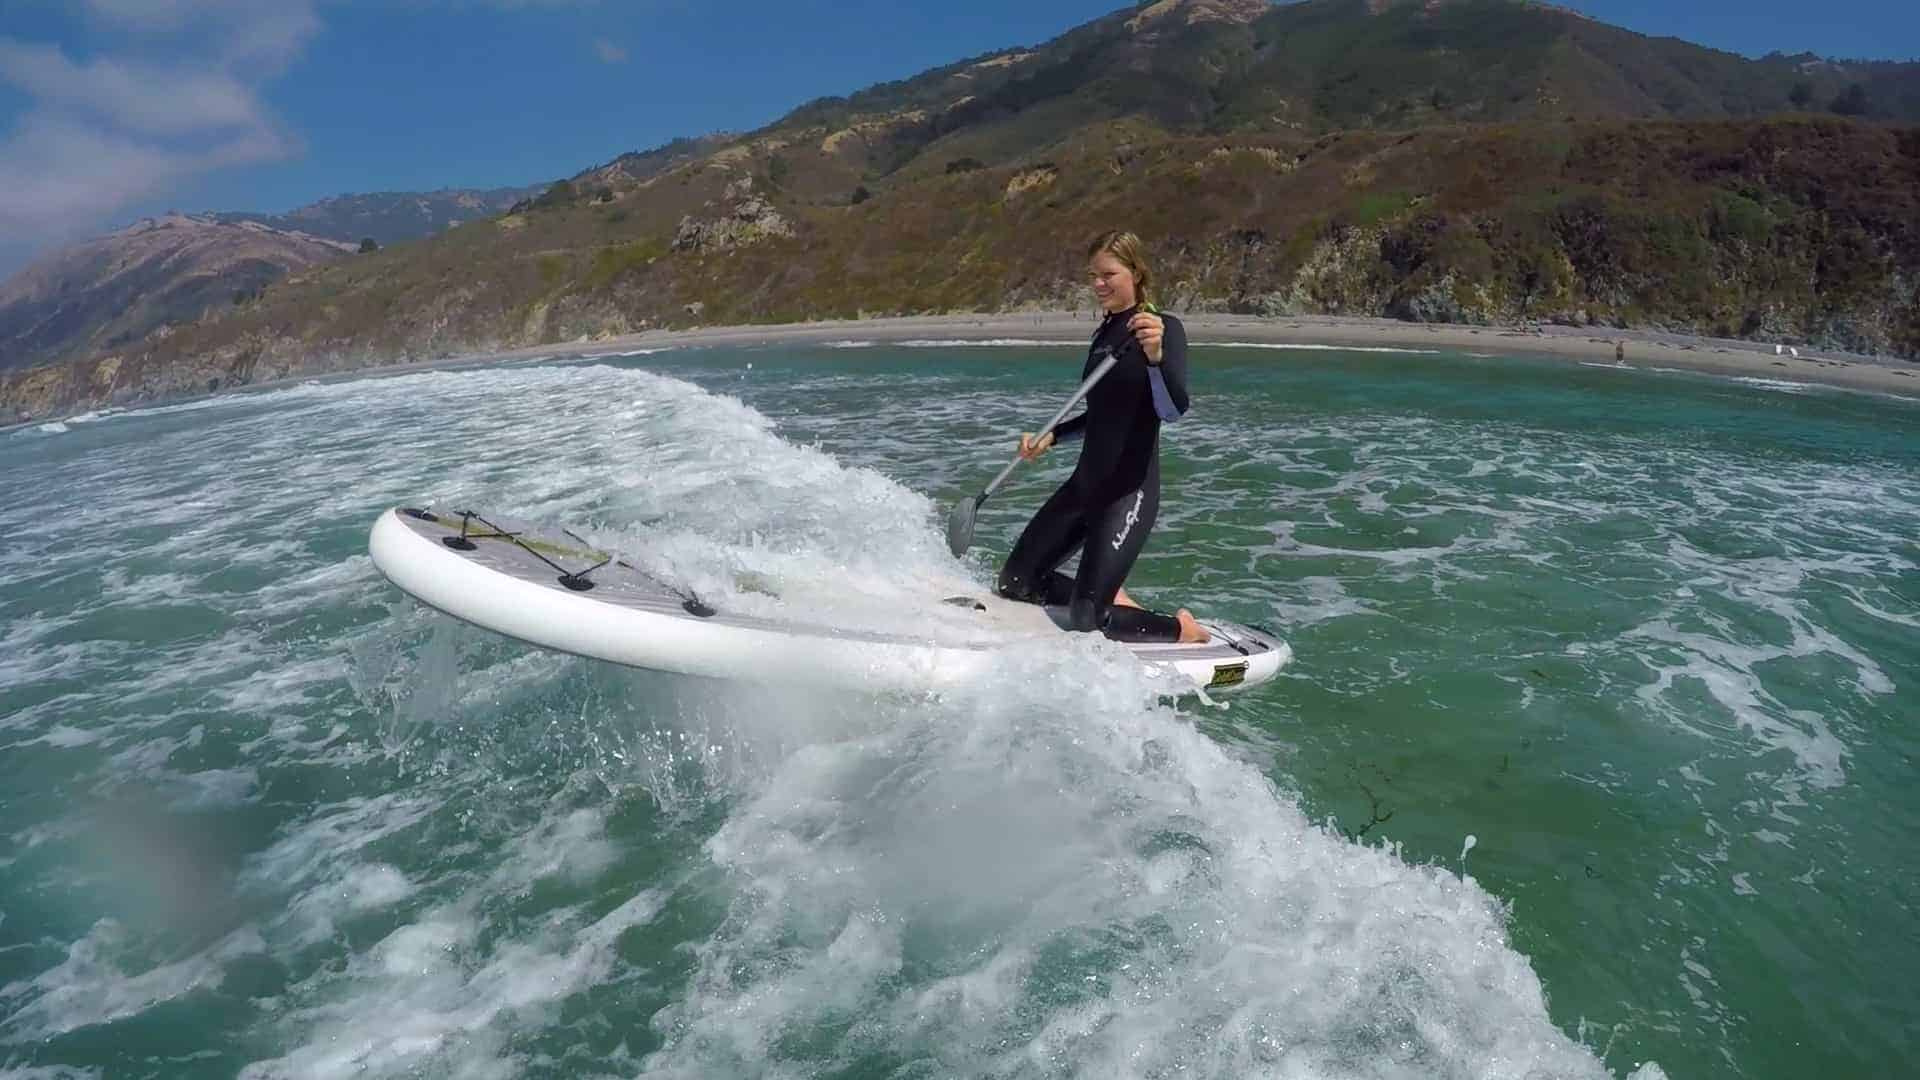 Paddleboard1 - 7 Adventurous Stops on the Pacific Coast Highway